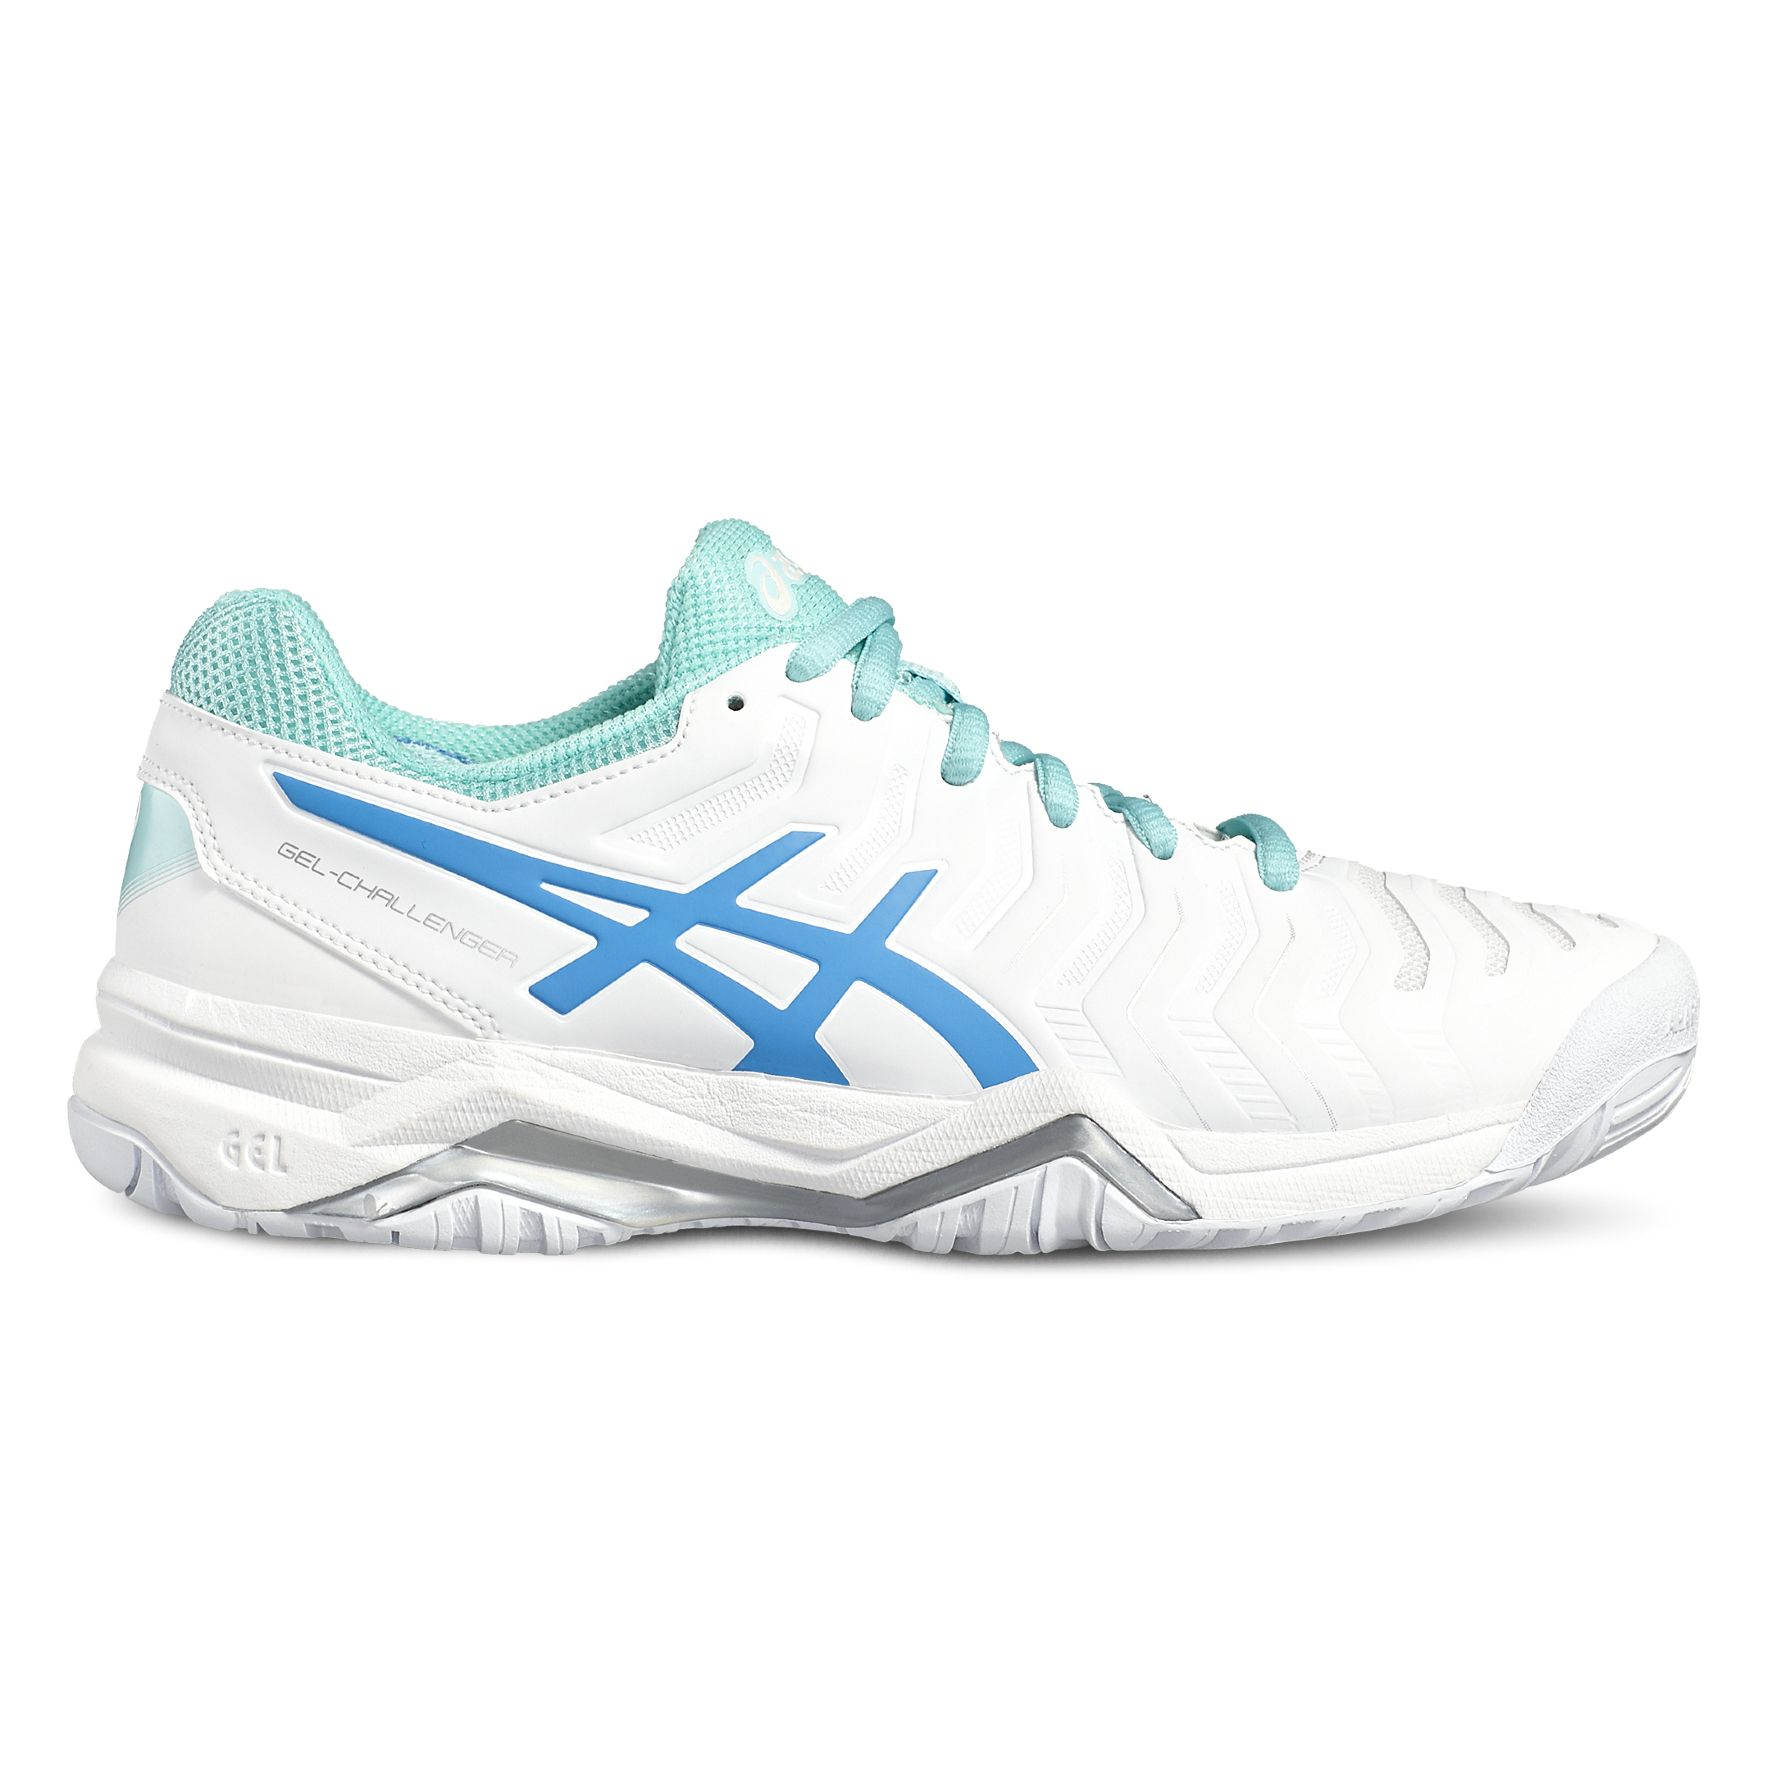 Size Of Asics Tennis Shoes